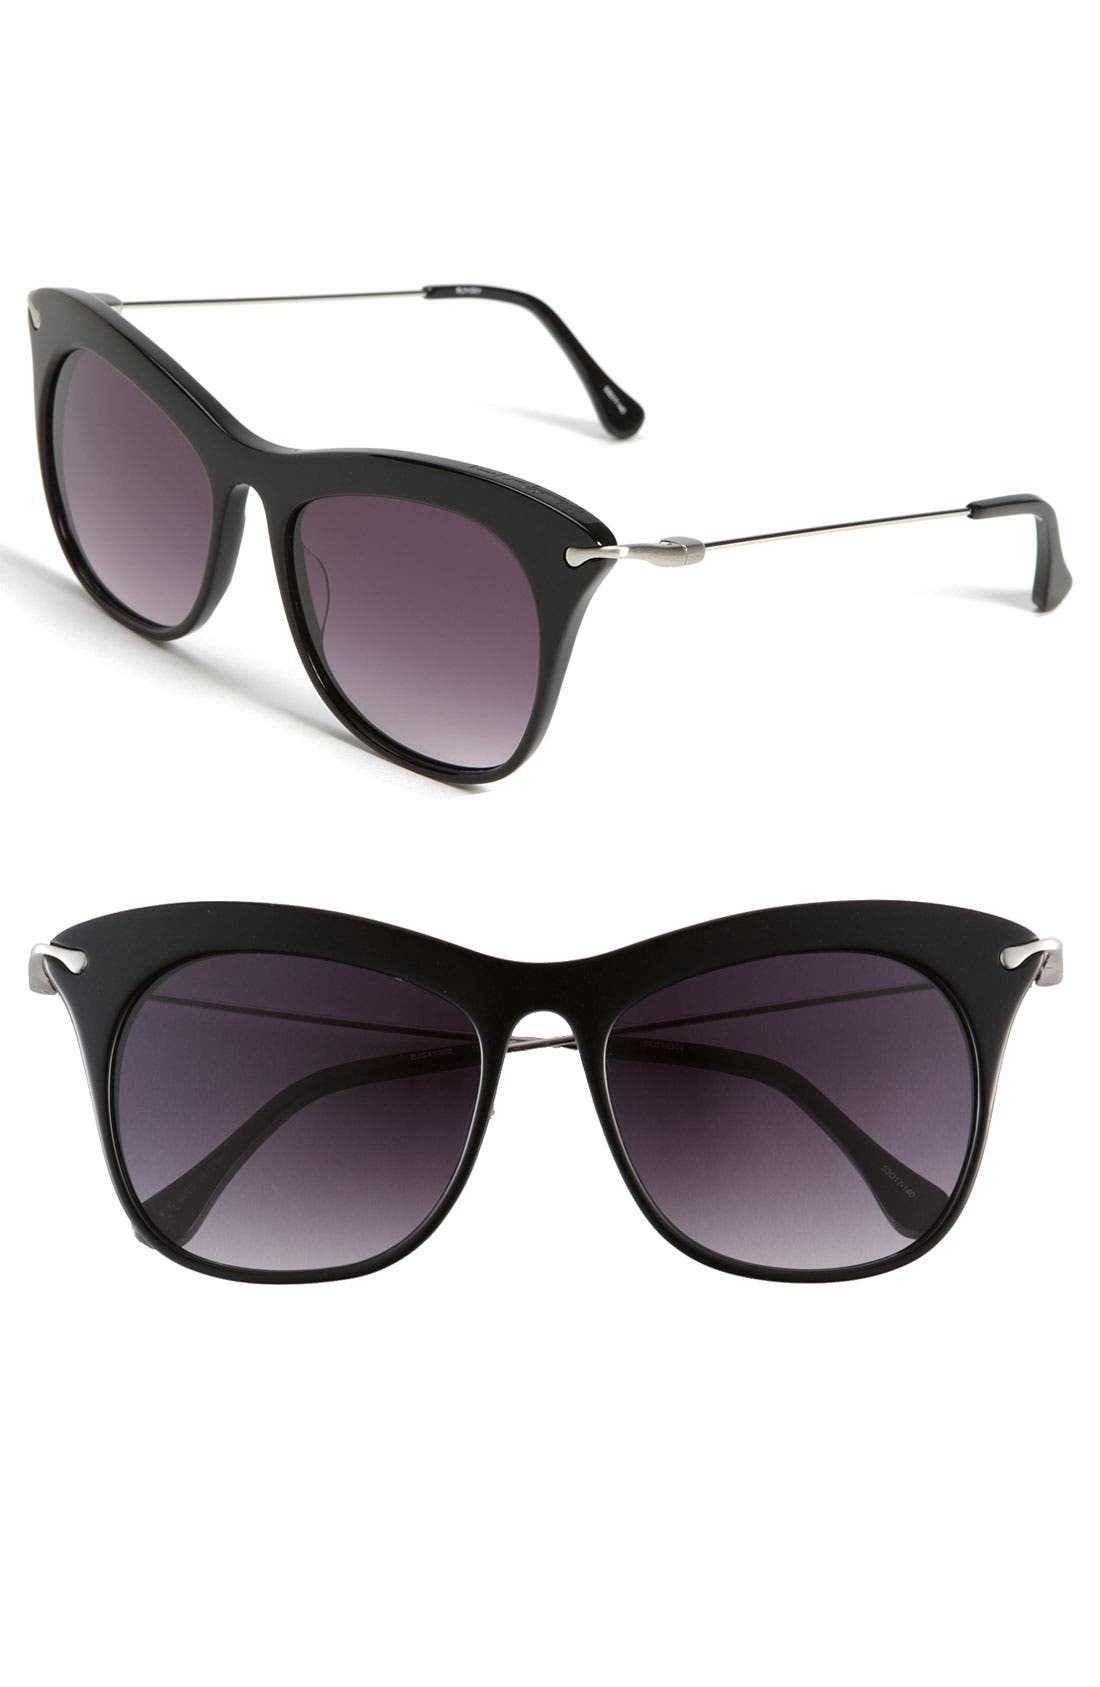 ELIZABETH AND JAMES 'Fairfax' 53mm Sunglasses, Main, color, 001